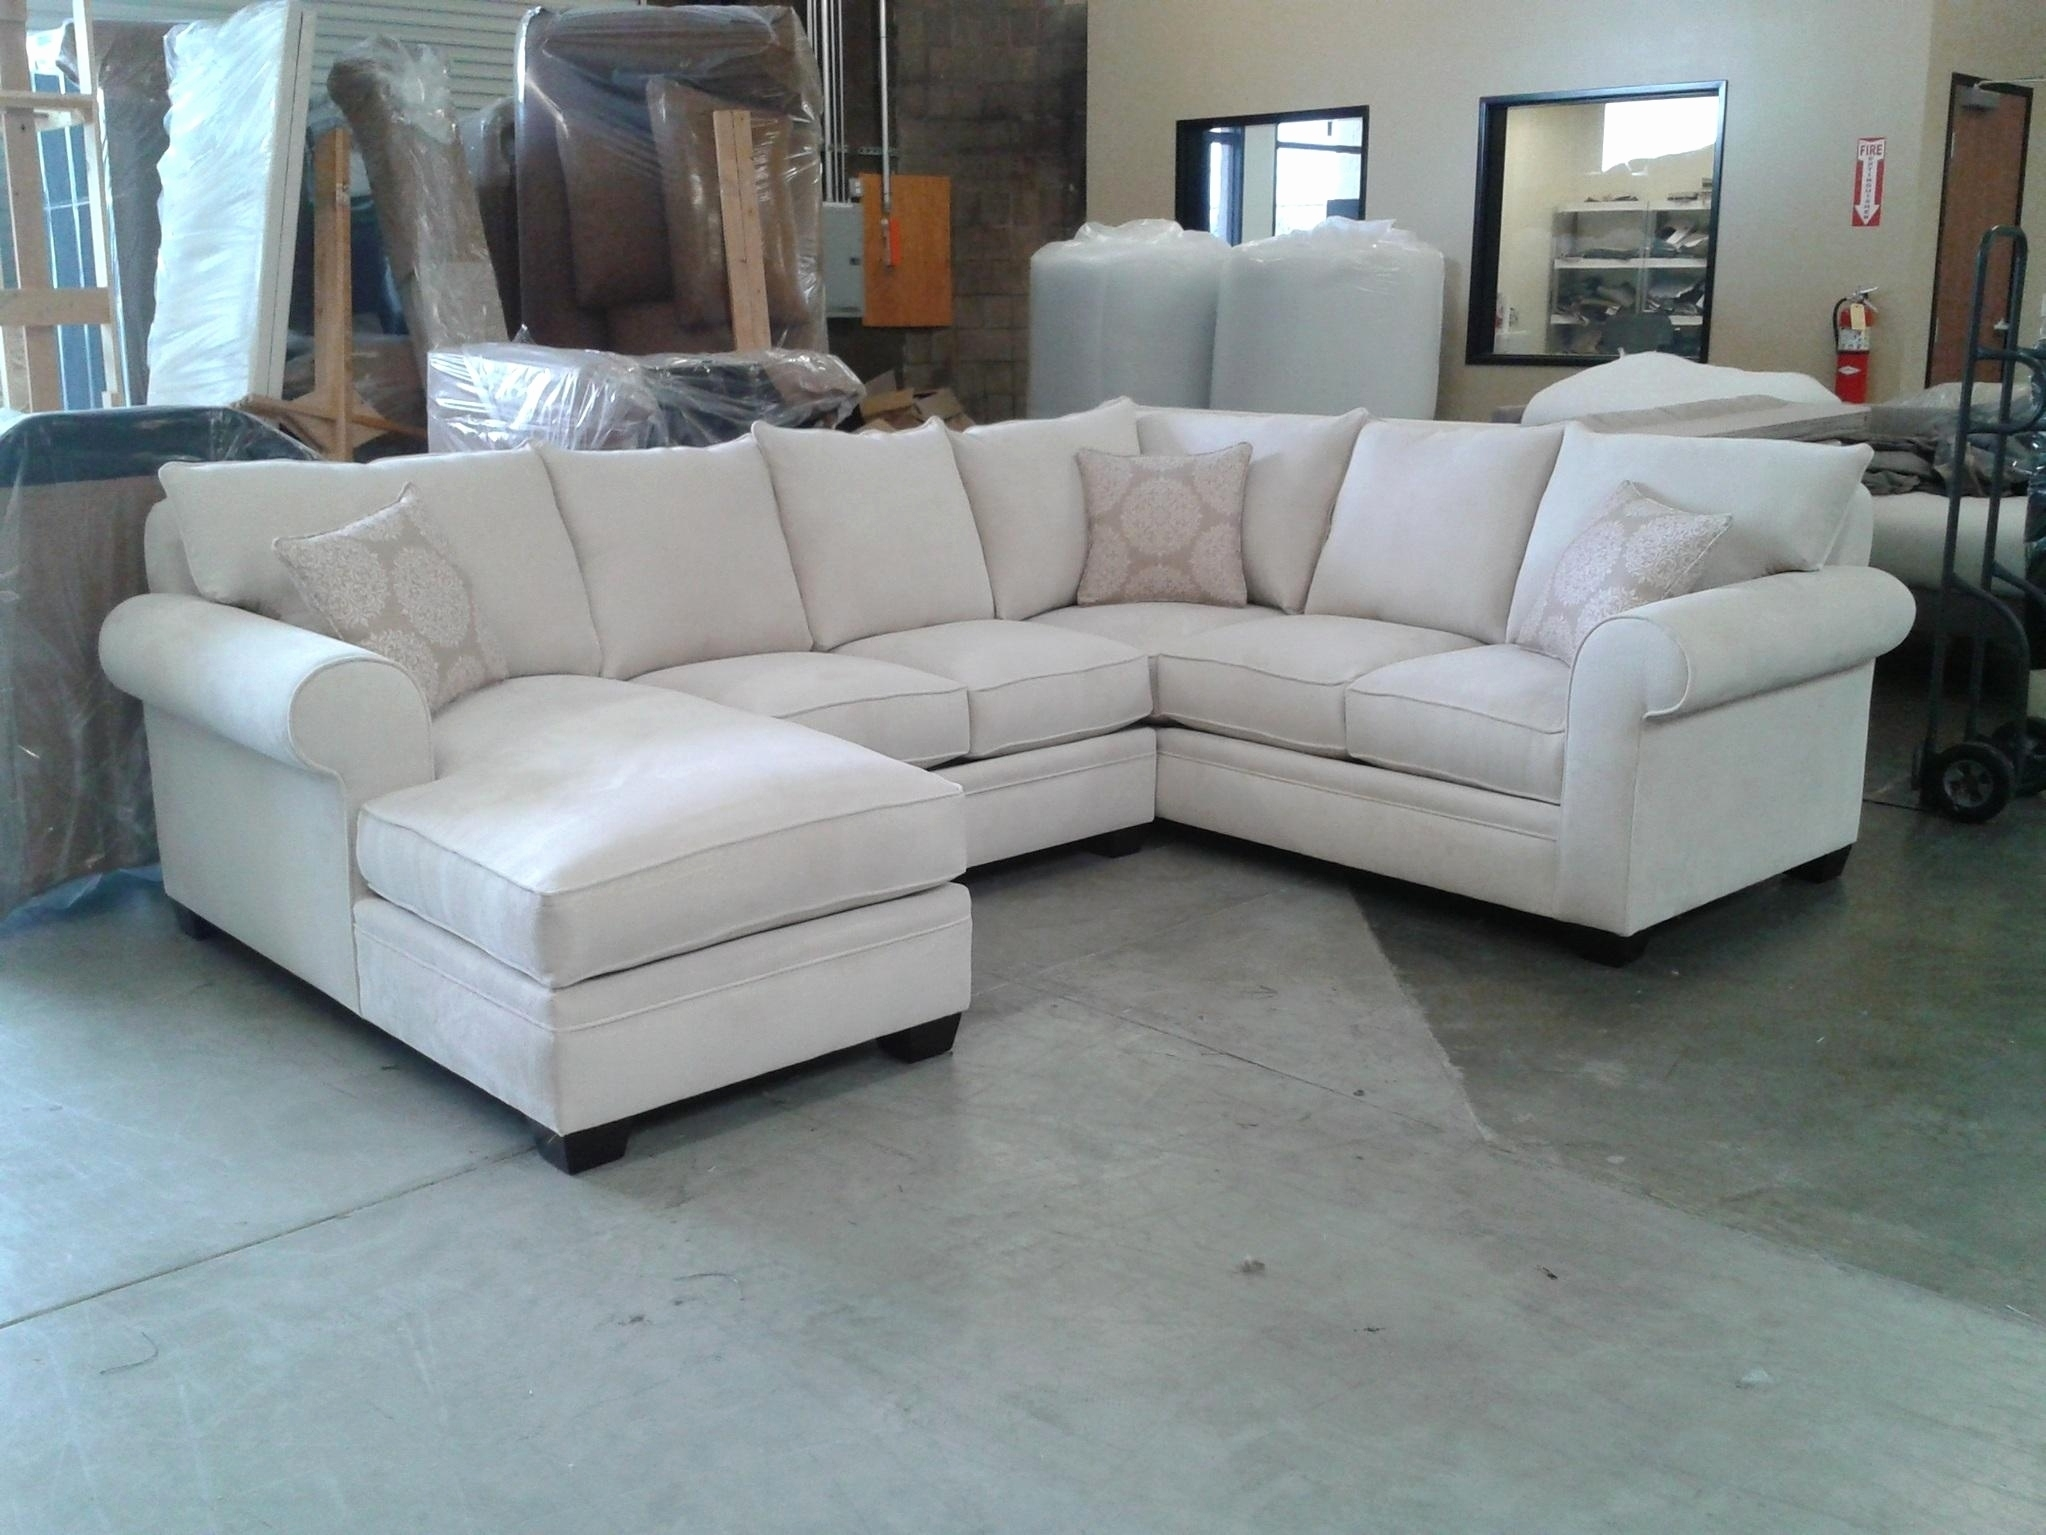 Luxury Down Sectional Sofa 2018 – Couches Ideas Within Down Sectional Sofas (Image 4 of 10)